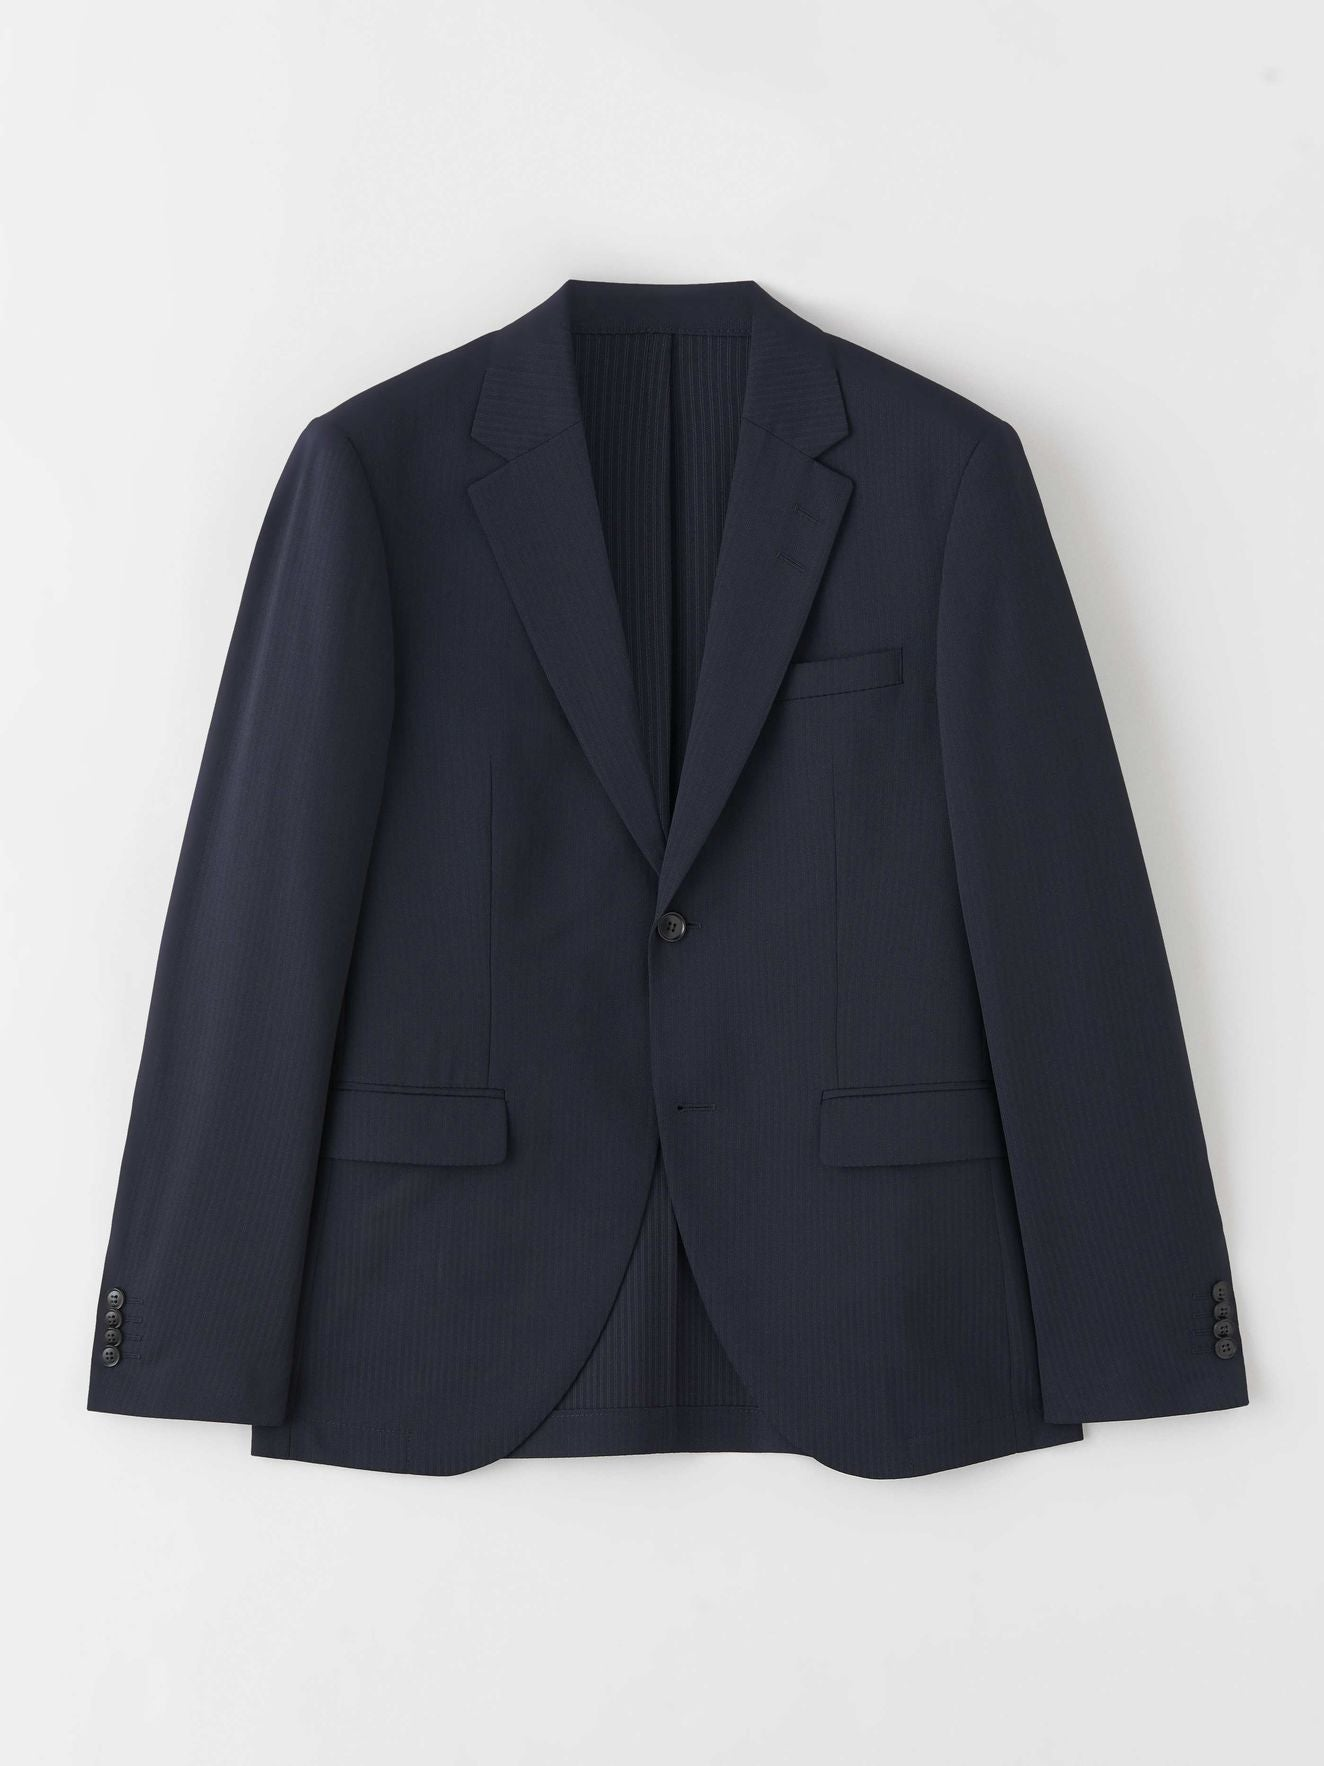 Tiger of Sweden Jamonte Ul Blazer Midnight Blue 209 - Mojo Independent Store